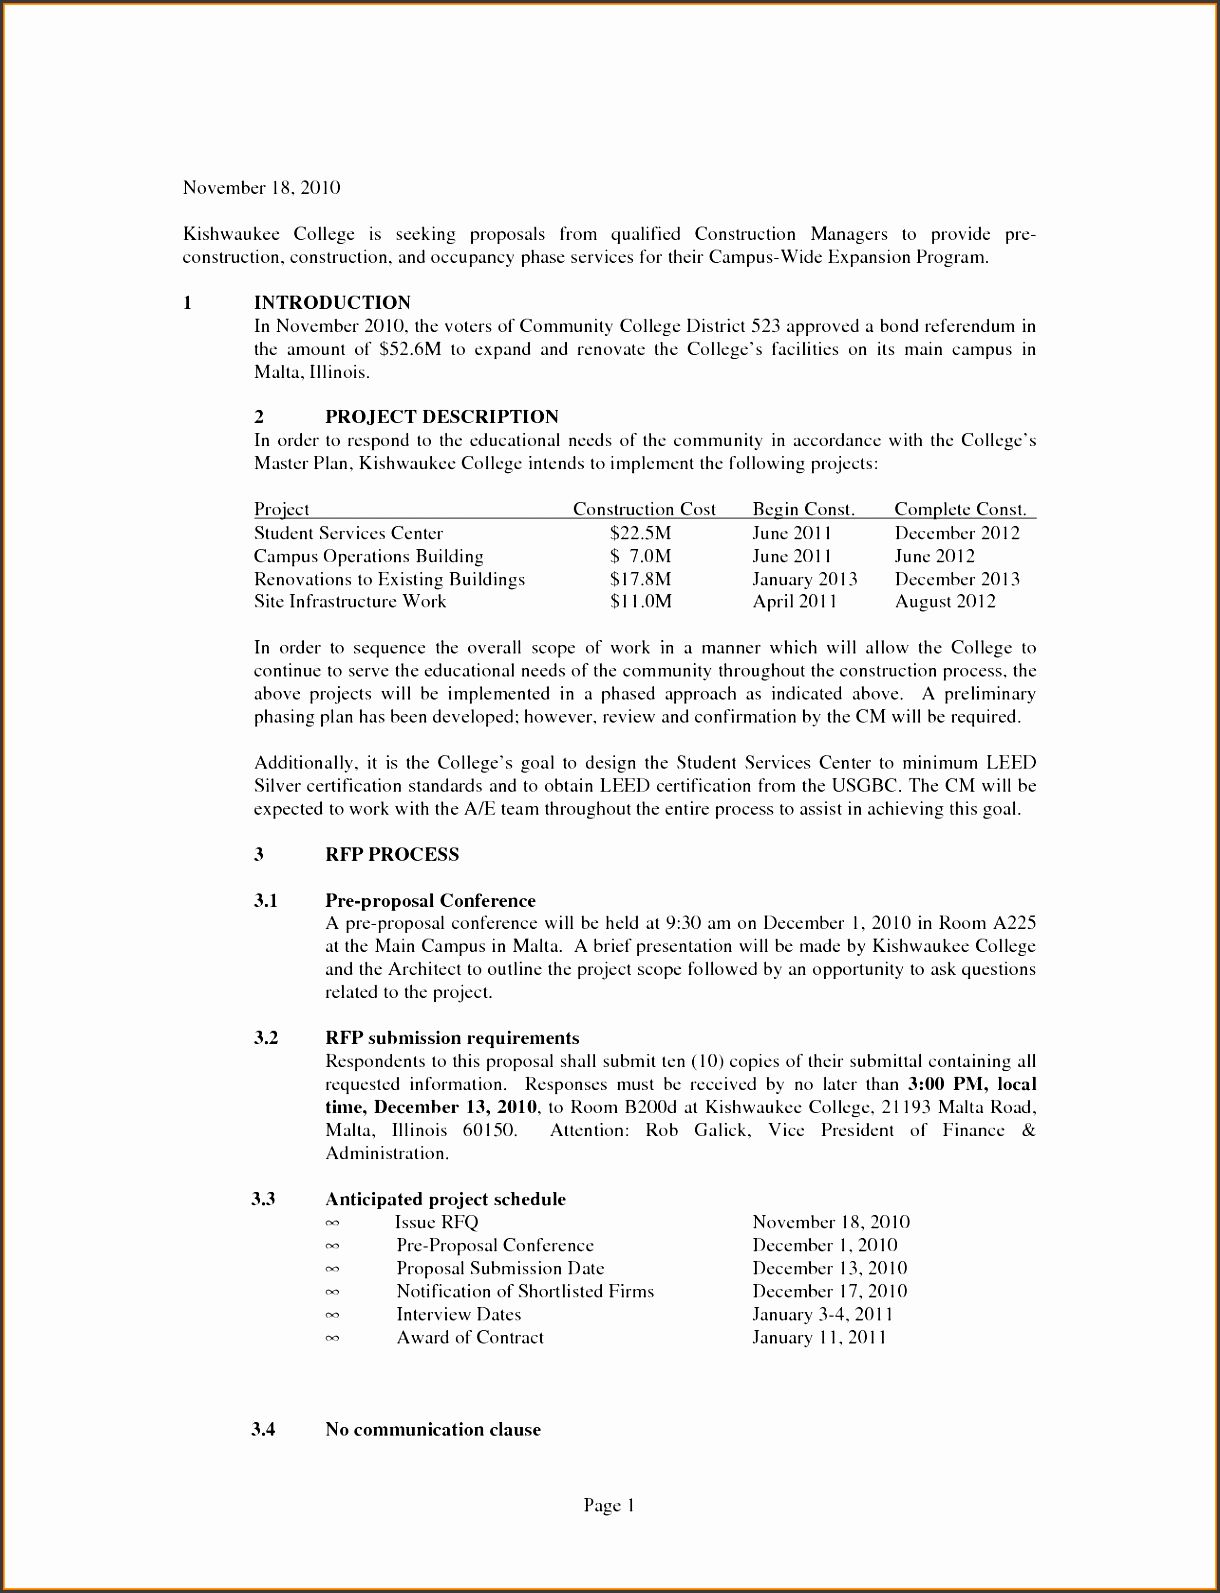 Contract For Construction Work Template Fresh Contract For Construction Work Tem Editable Lesson Plan Template Unique Resume Template Lesson Plan Template Free